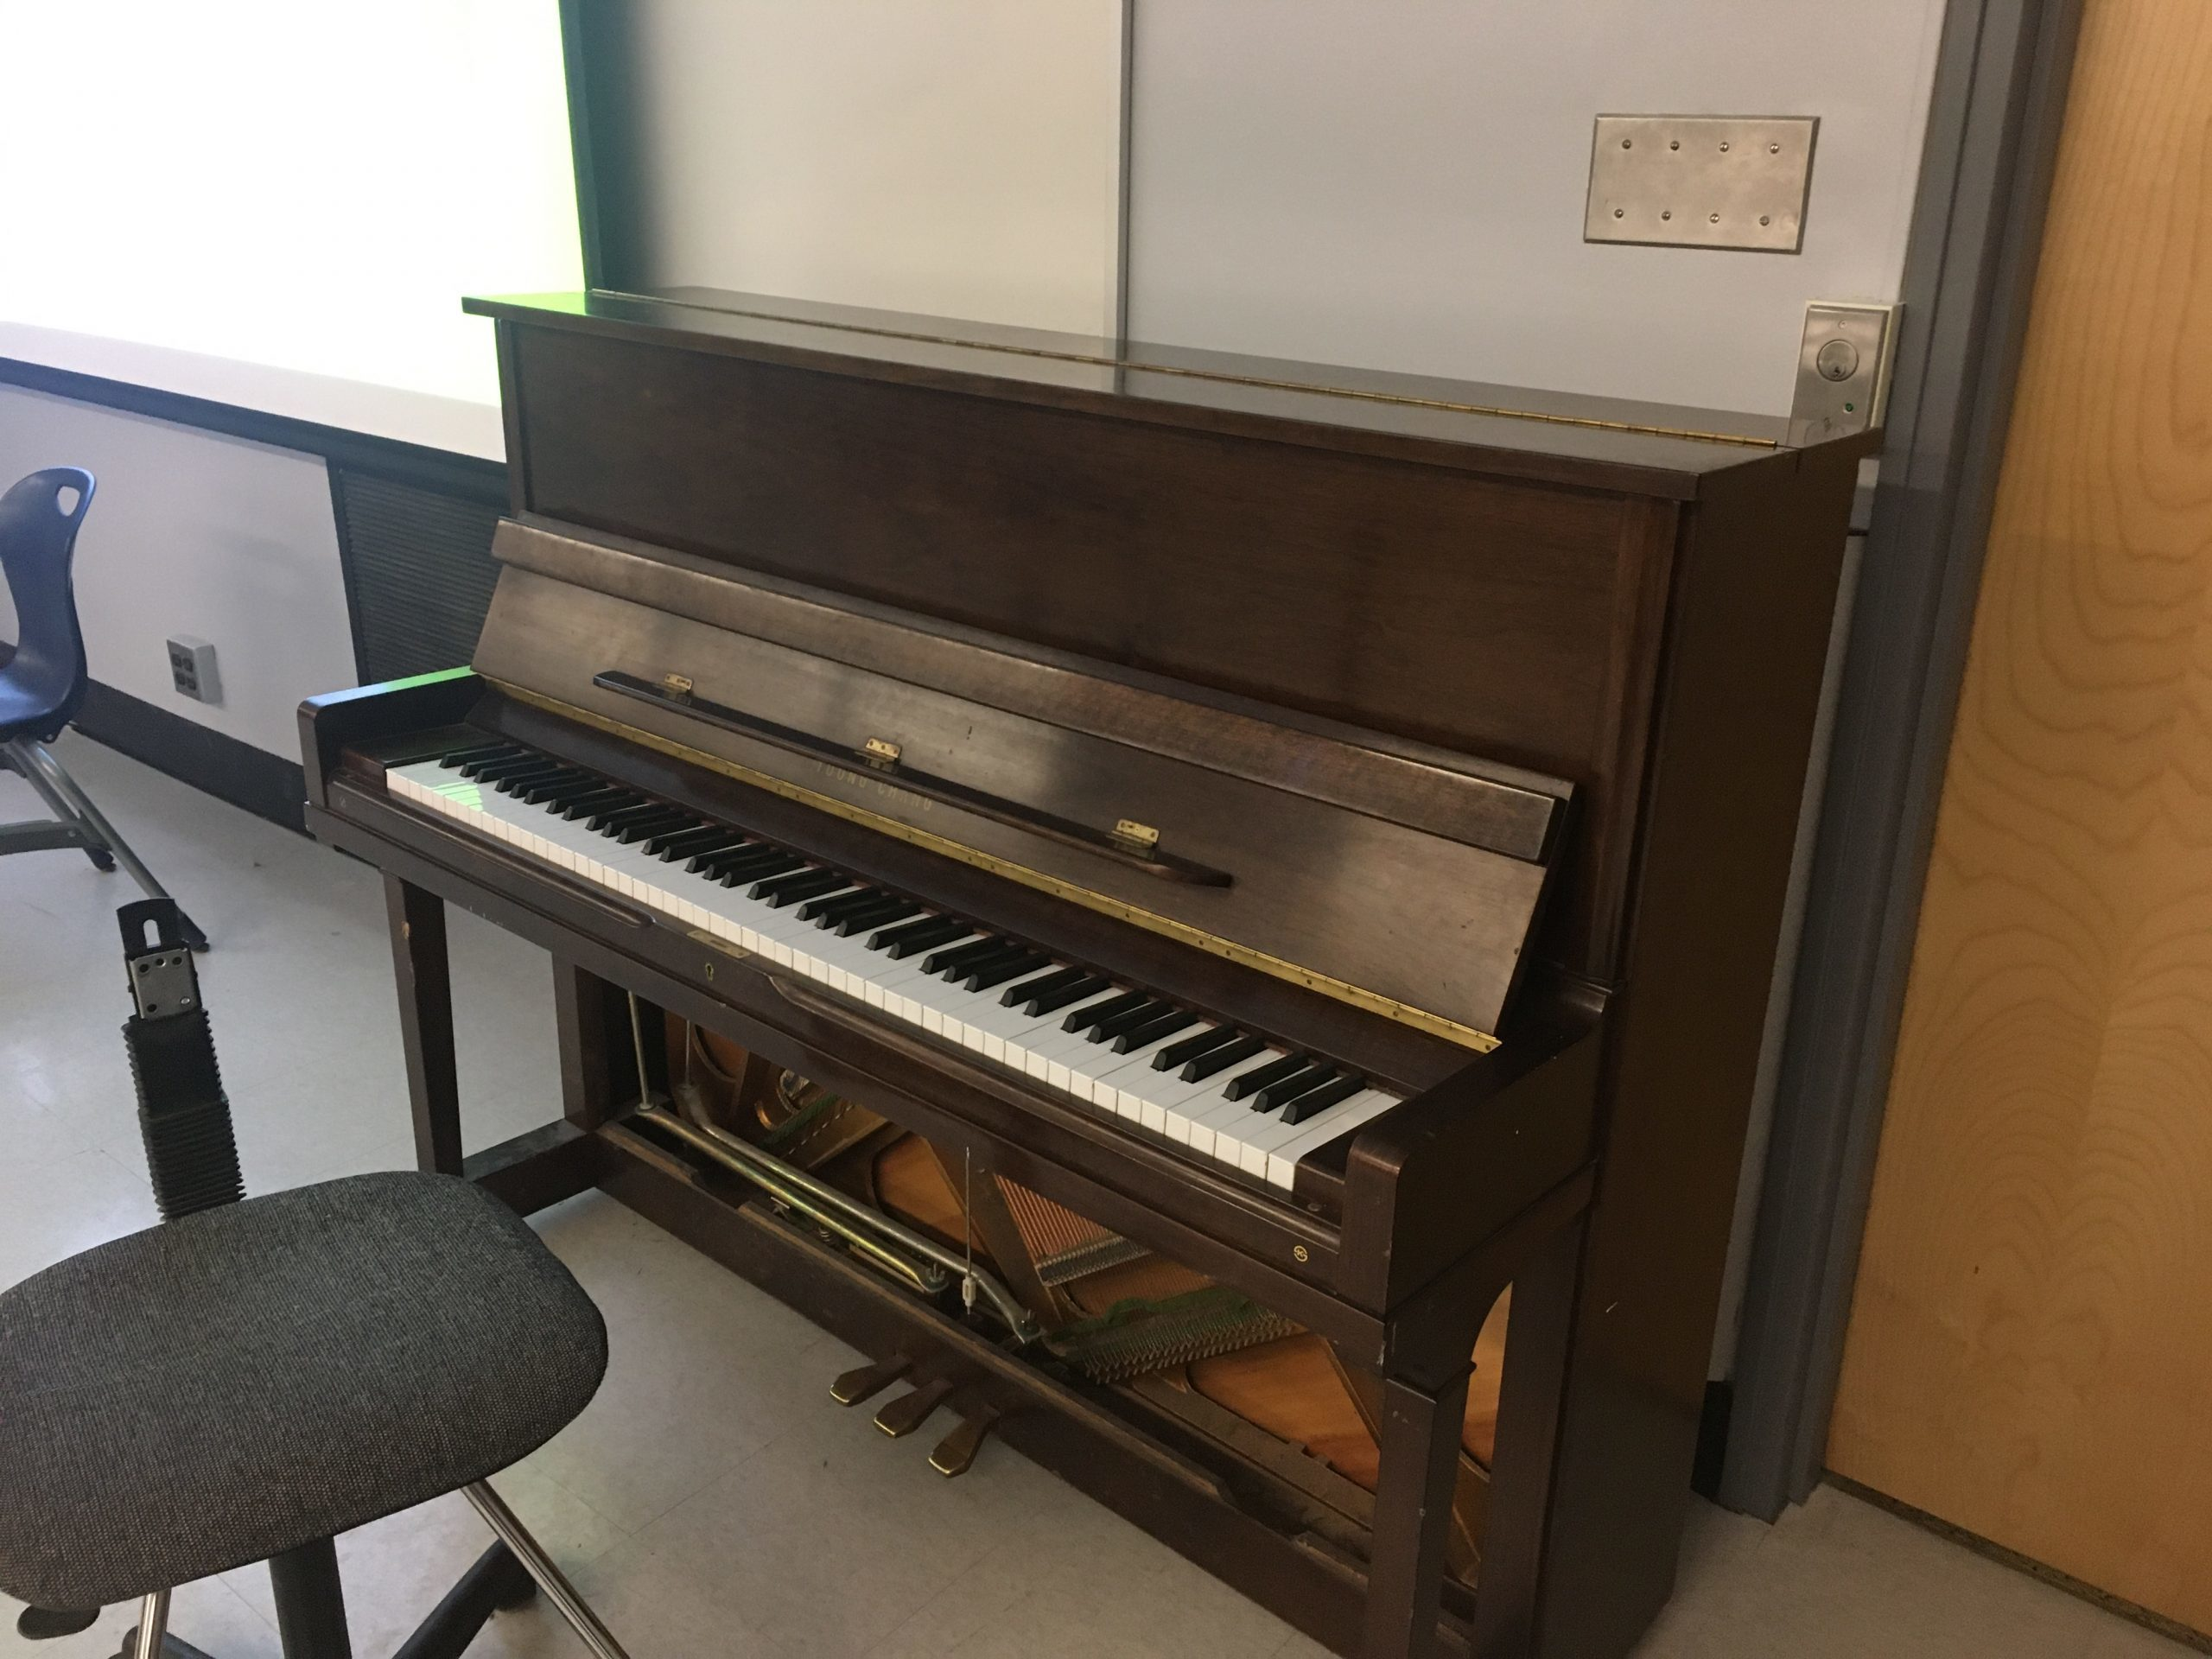 Piano in classroom with office chair in Kerr Hall South